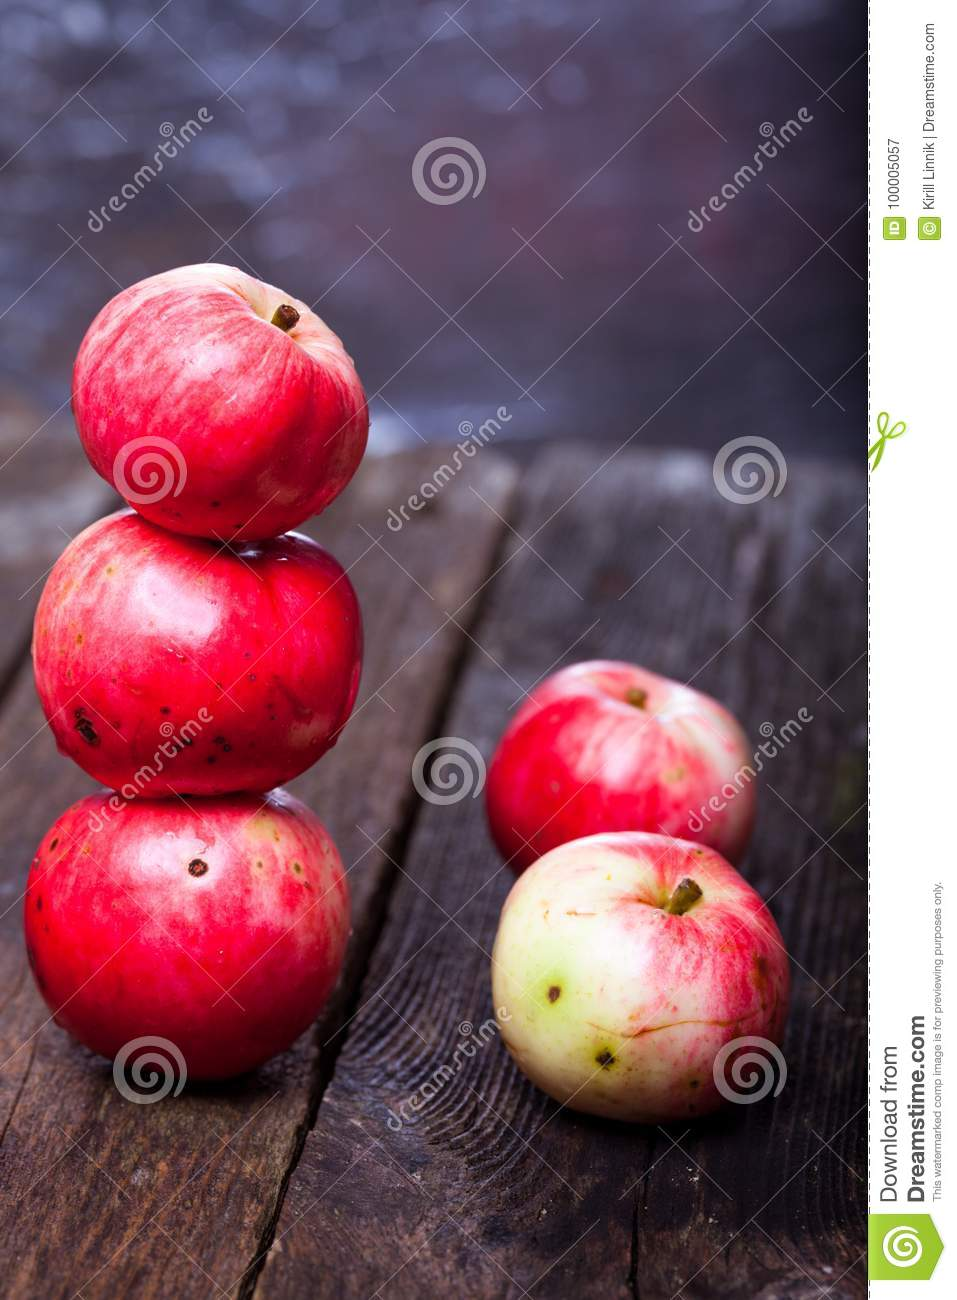 Download Red ripe apples stock image. Image of apple, nature - 100005057